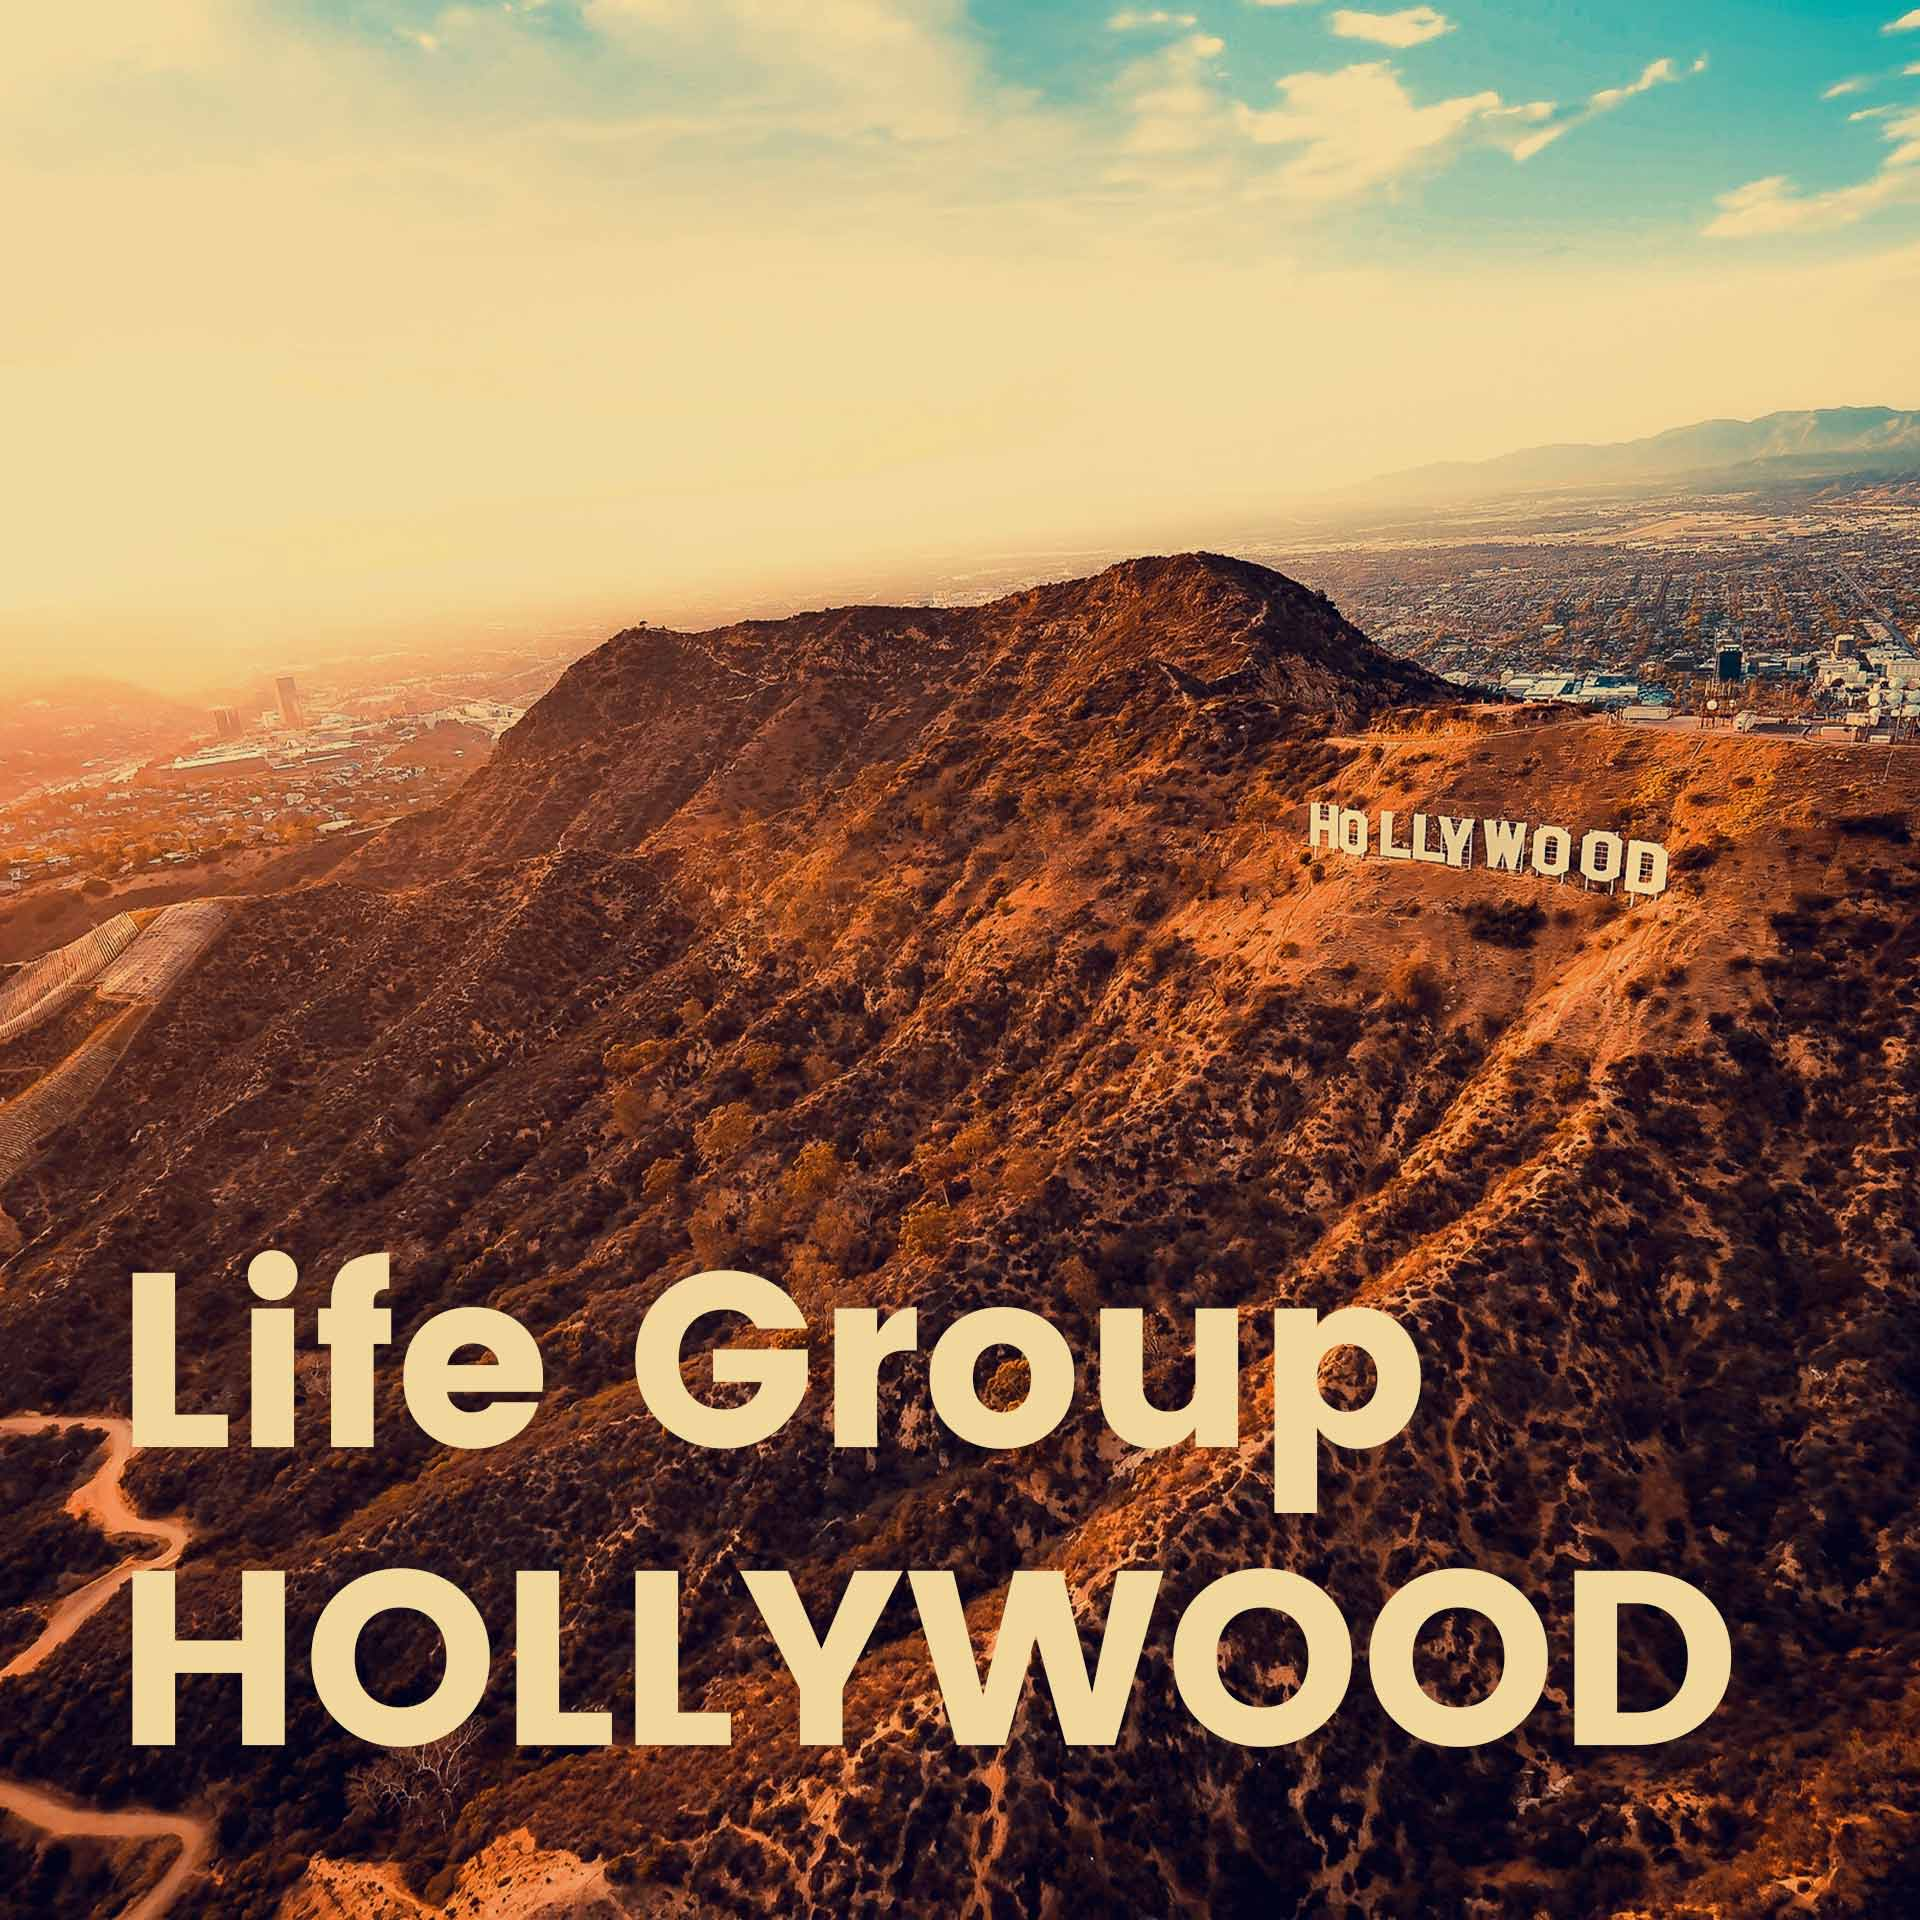 Life Group in Hollywood for all. Contact Iwona: iwona@stonetoflesh.org